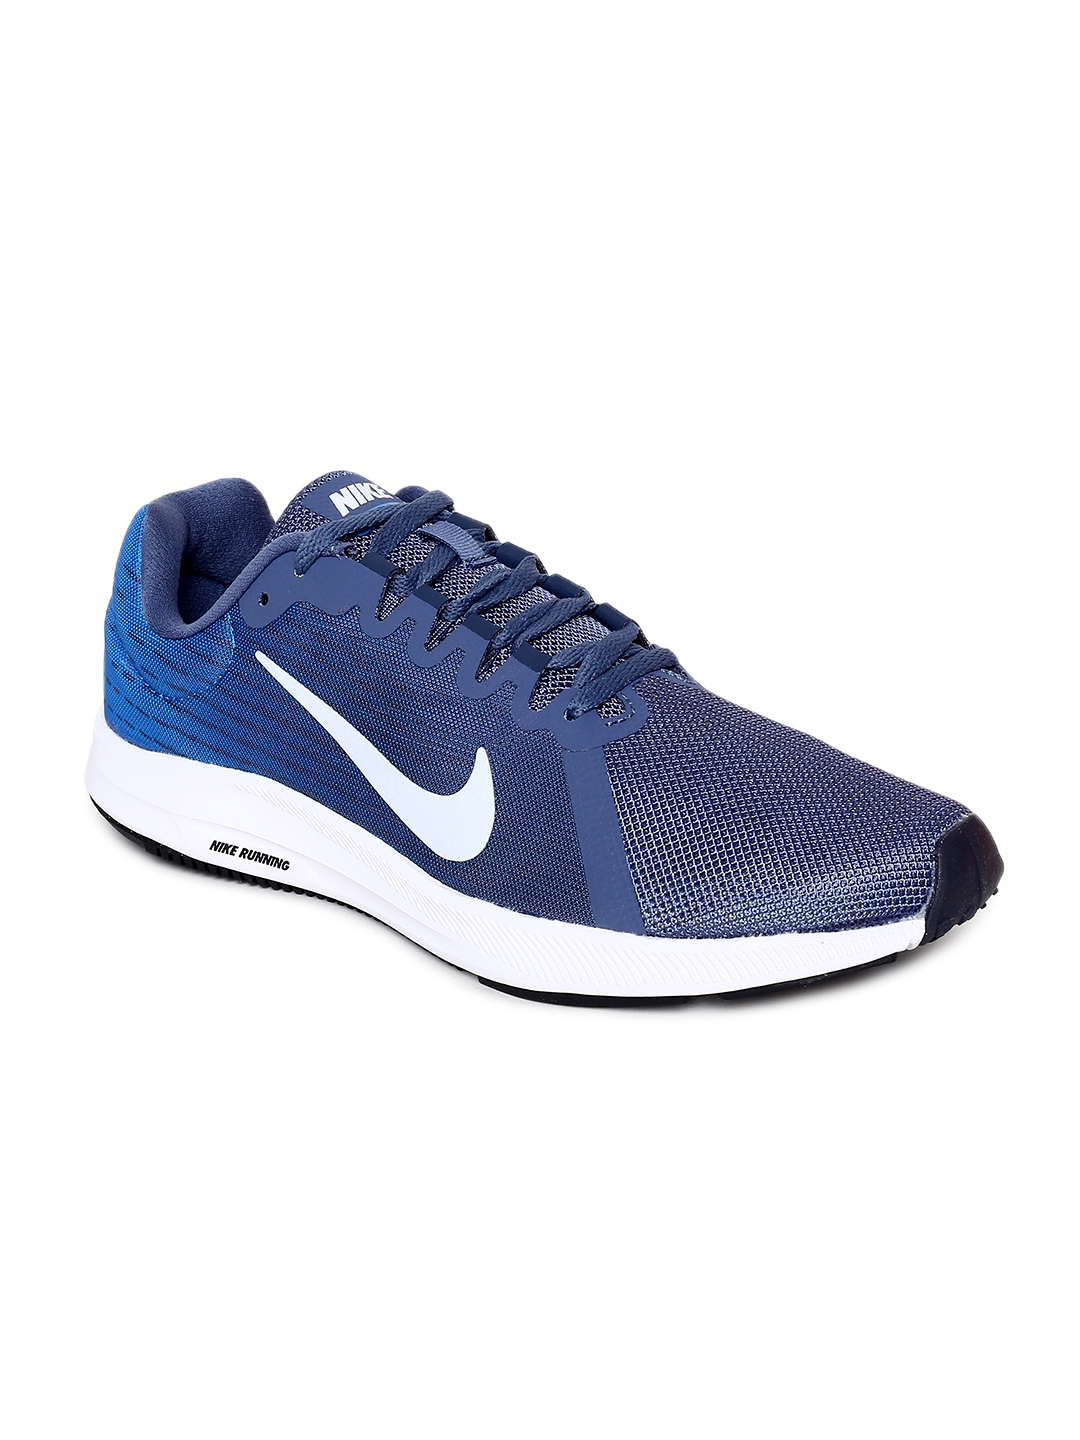 d29a58b073e69 Buy Nike Women NIKE DOWNSHIFTER 8 Blue Running Shoes - Sports Shoes ...